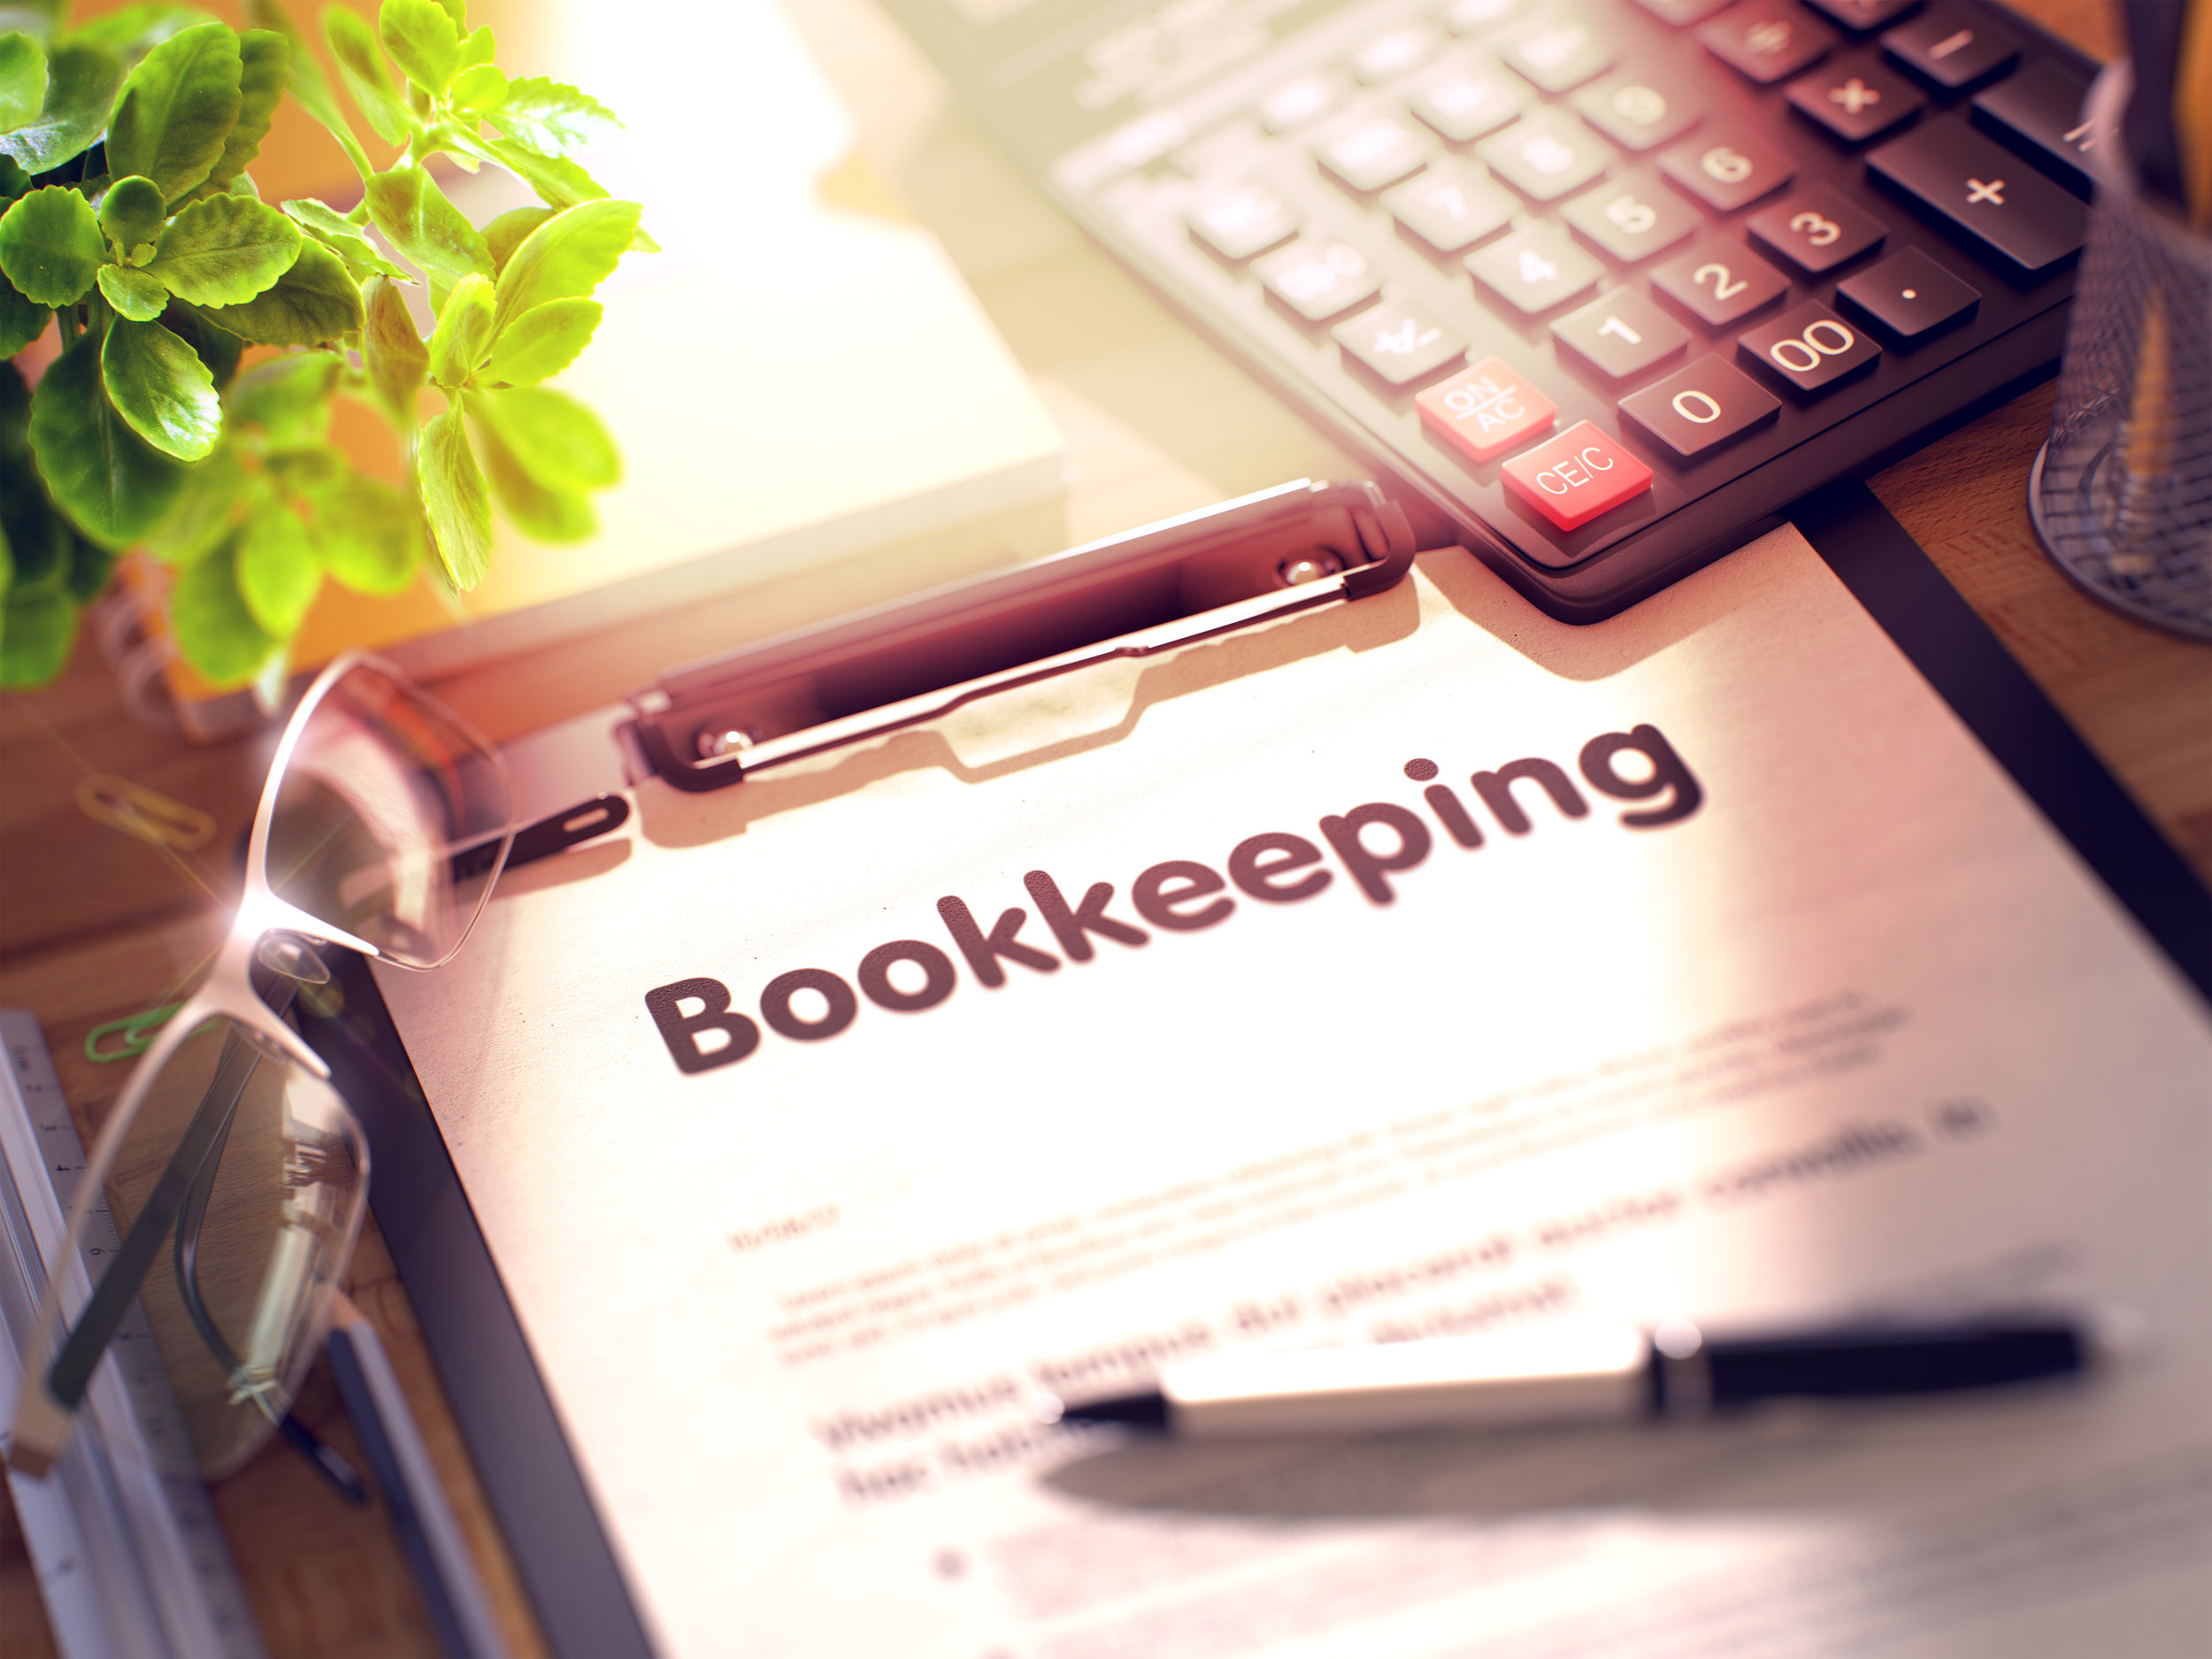 Bookkeeping Services - Soul-Based Solutions help wellness professionals operate and grow into a profitable practice while having having more control over their books and understand their financial position.